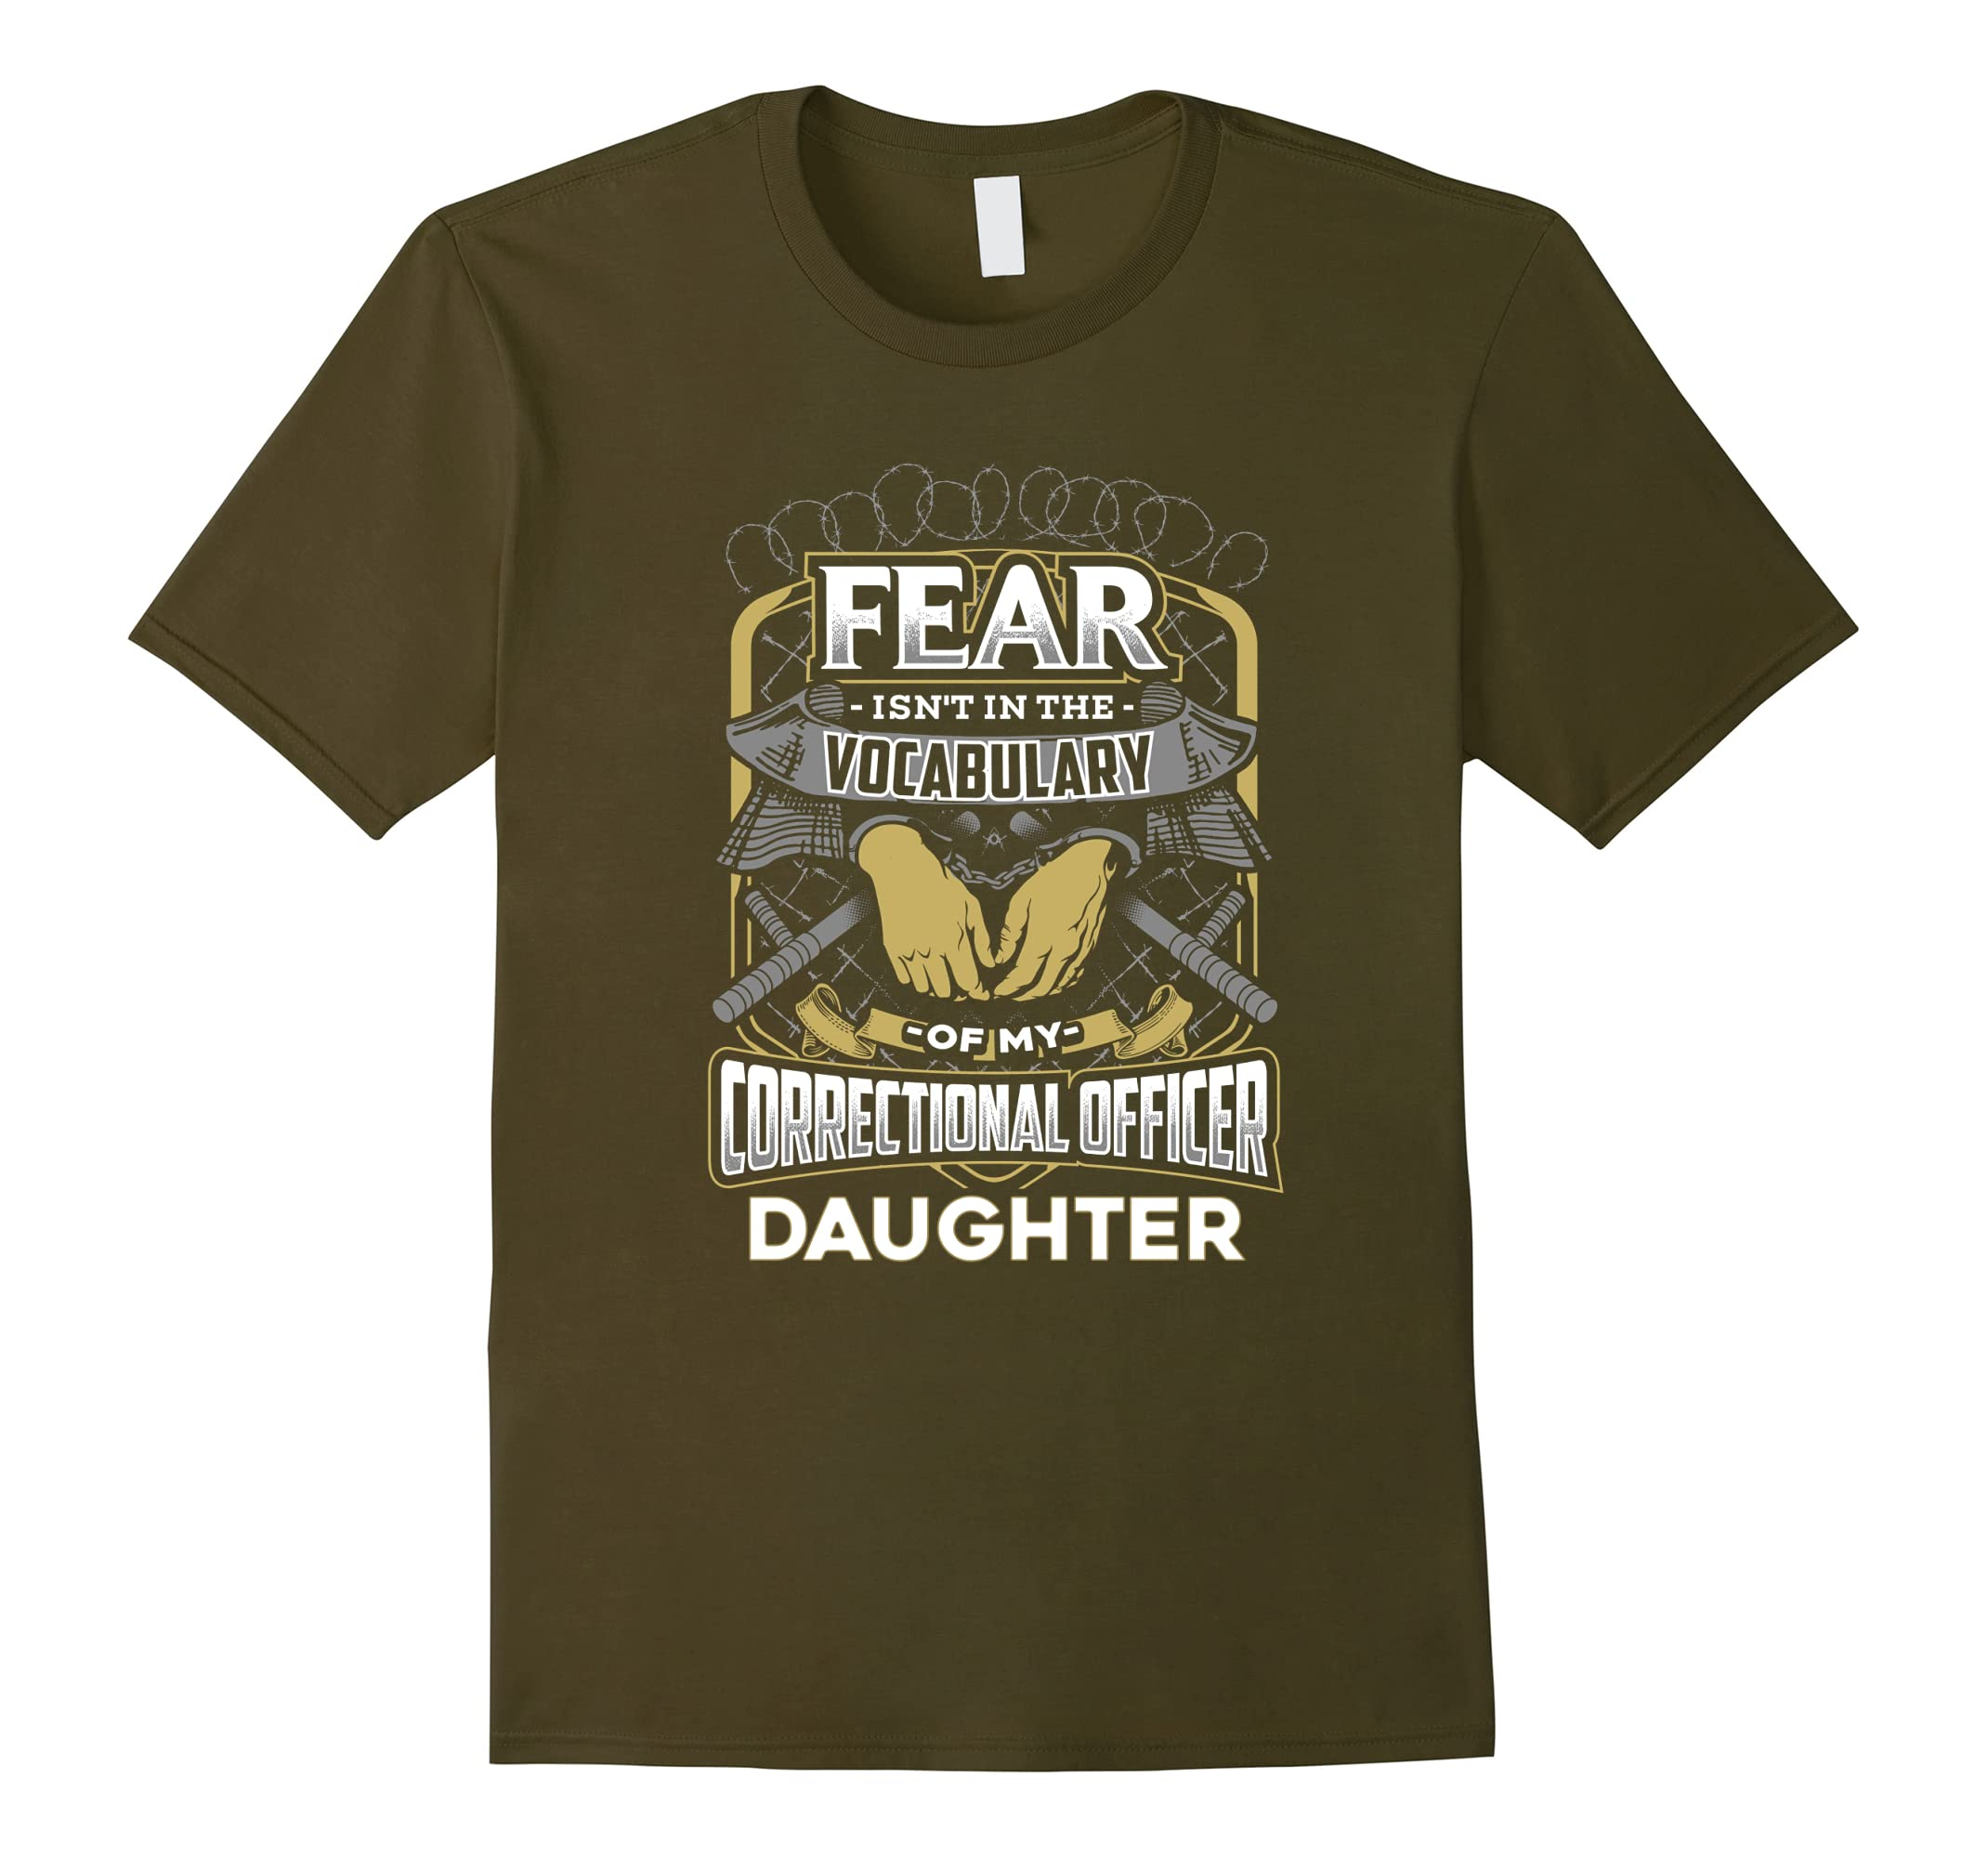 Fearless Correctional Officer Daughter T-Shirt-RT